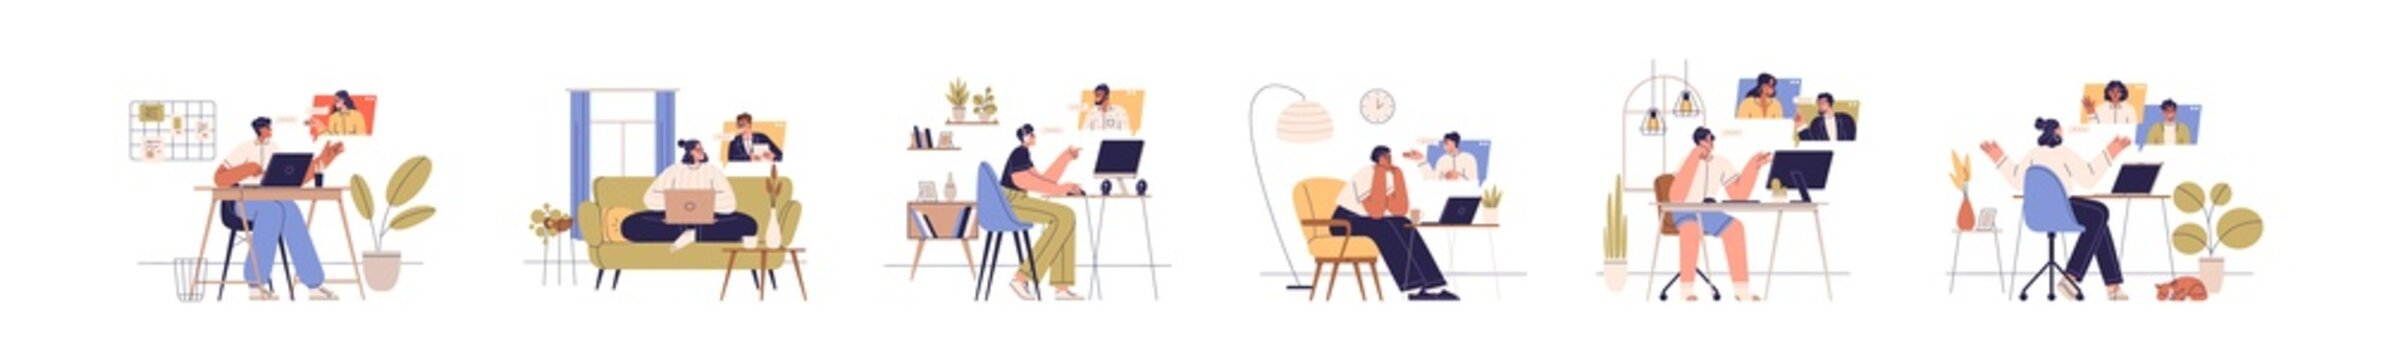 People with computers during online business communication at remote work. Set of man and woman with laptops at virtual video conference calls. Flat vector illustration isolated on white background